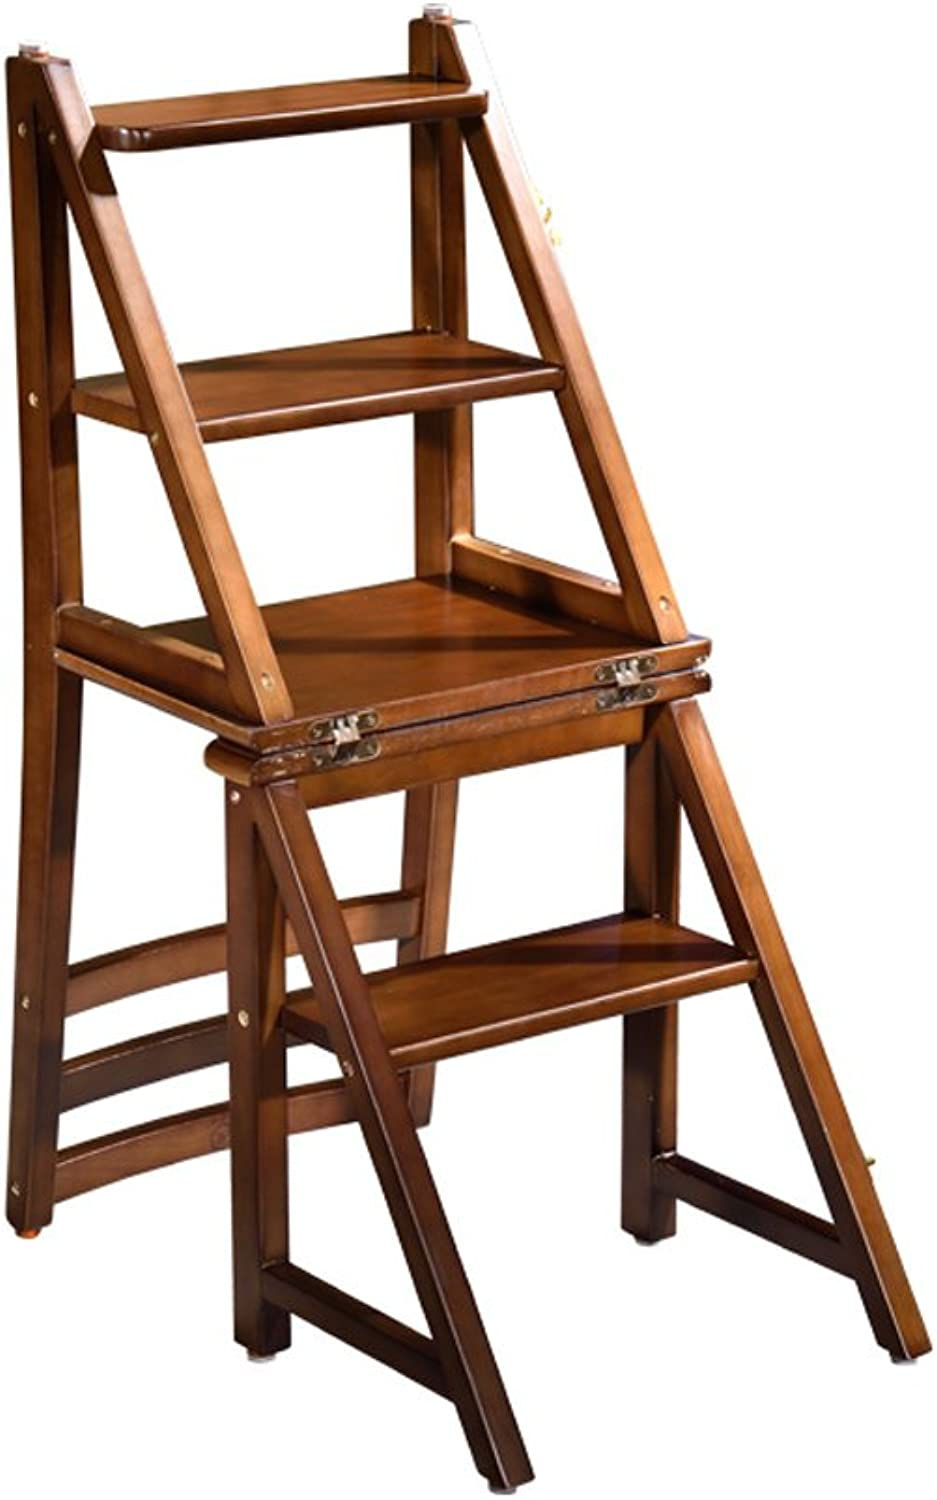 Wood Multi-Functional Congreenible Folding Home Kitchen Ladder Chair Four Step Stool Furniture (color   Walnut color)